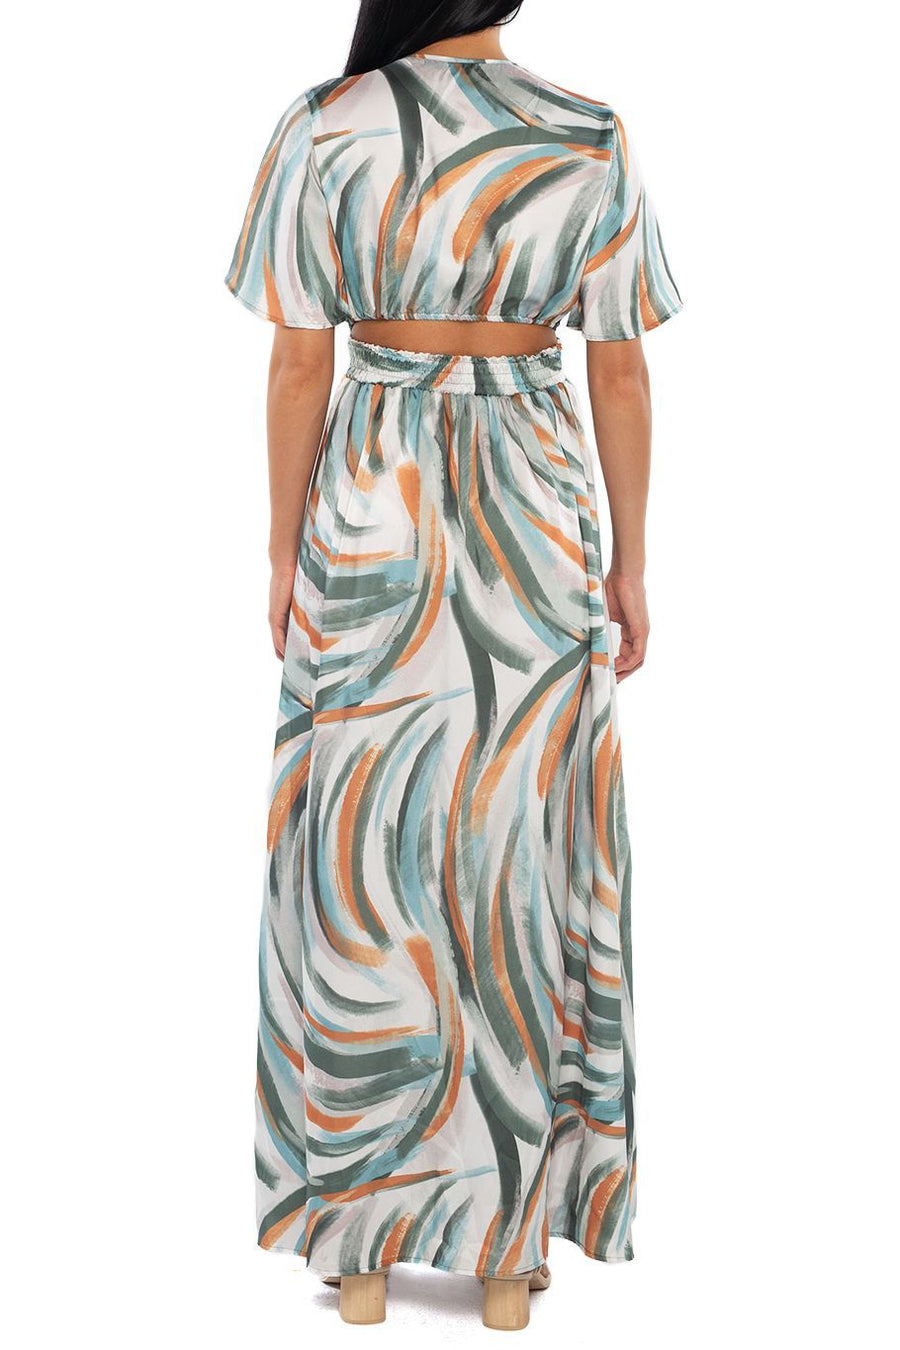 Catalina Cut Out Maxi - Watercolor Stripe